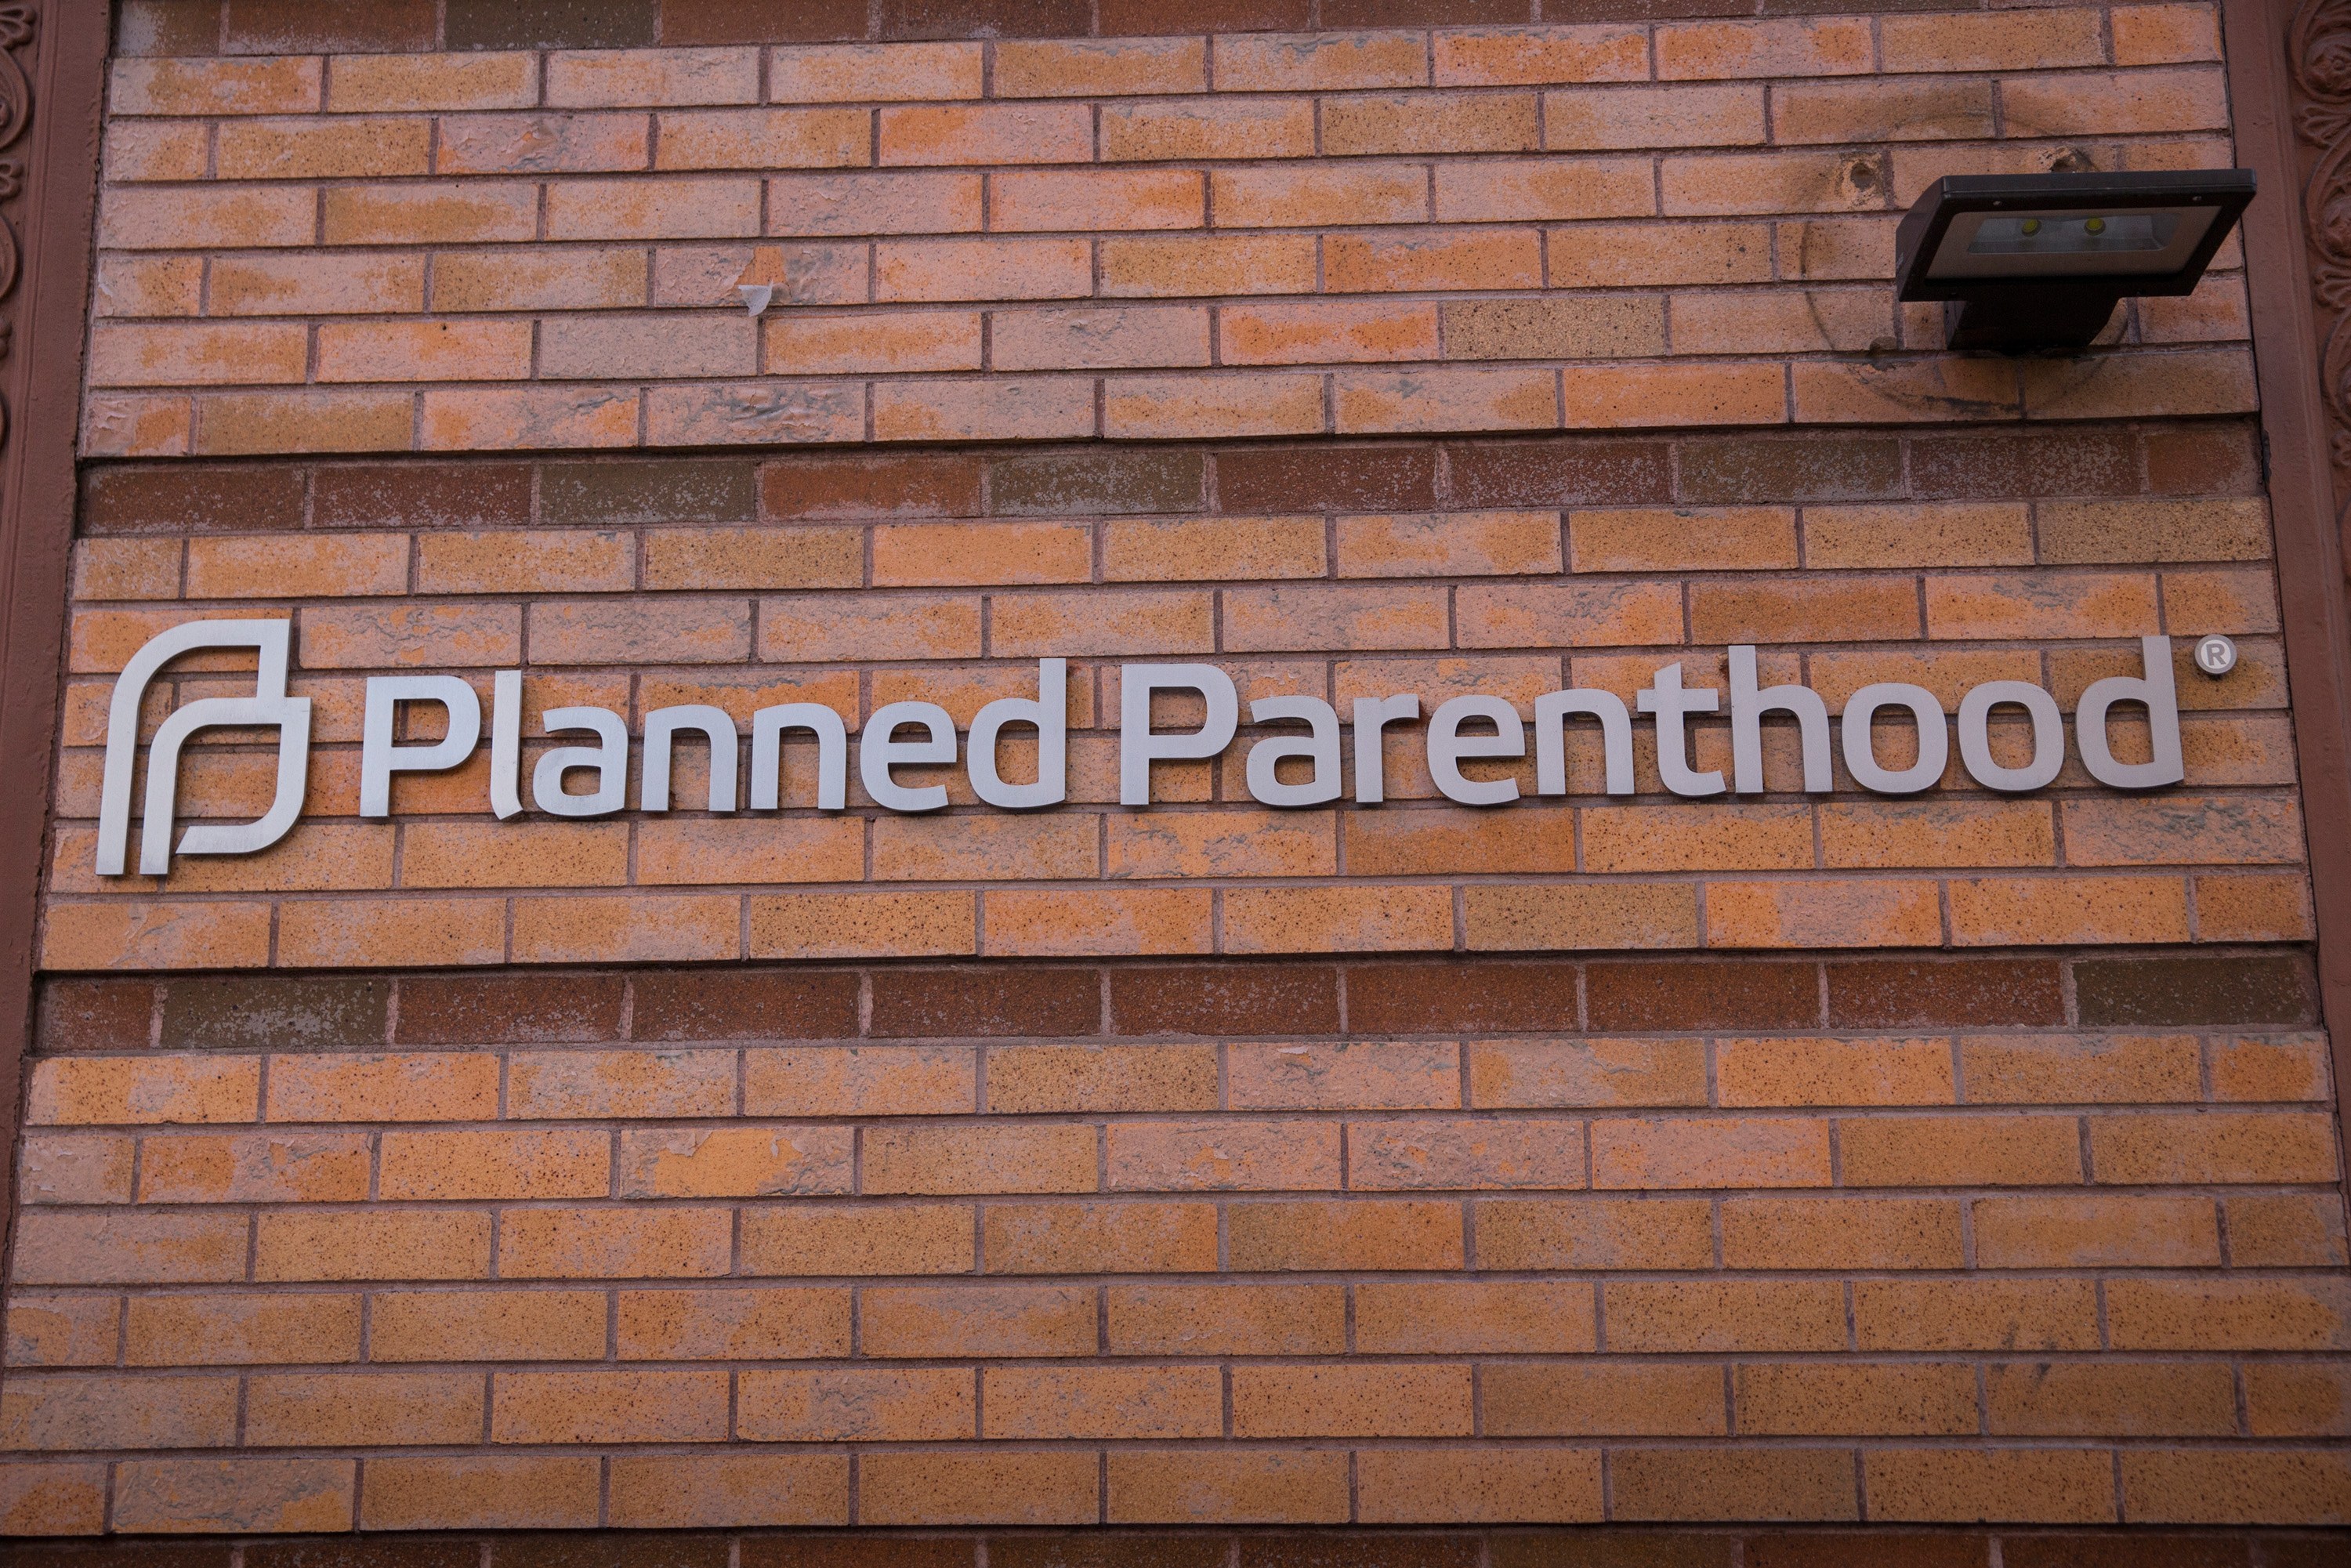 planned parenthood interest group mission